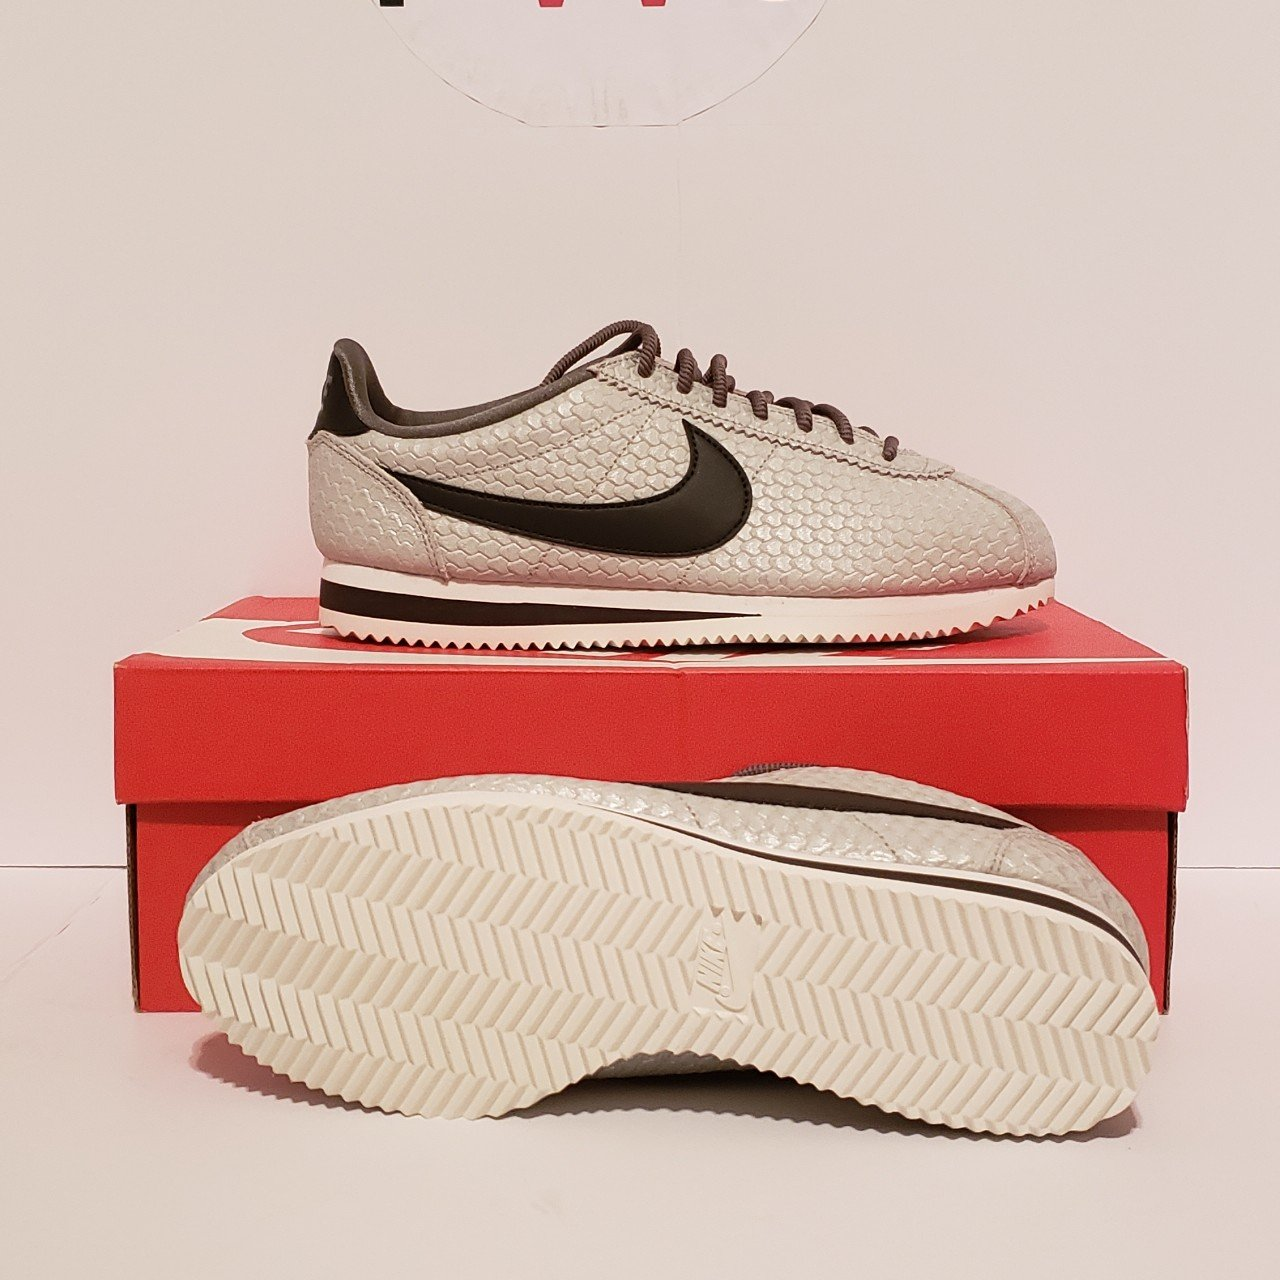 sneakers for cheap f1c9b fedc1  firstwatchsneakers. 6 months ago. Davenport, Osceola County, United  States. New WOMENS Nike classic cortez SE ...